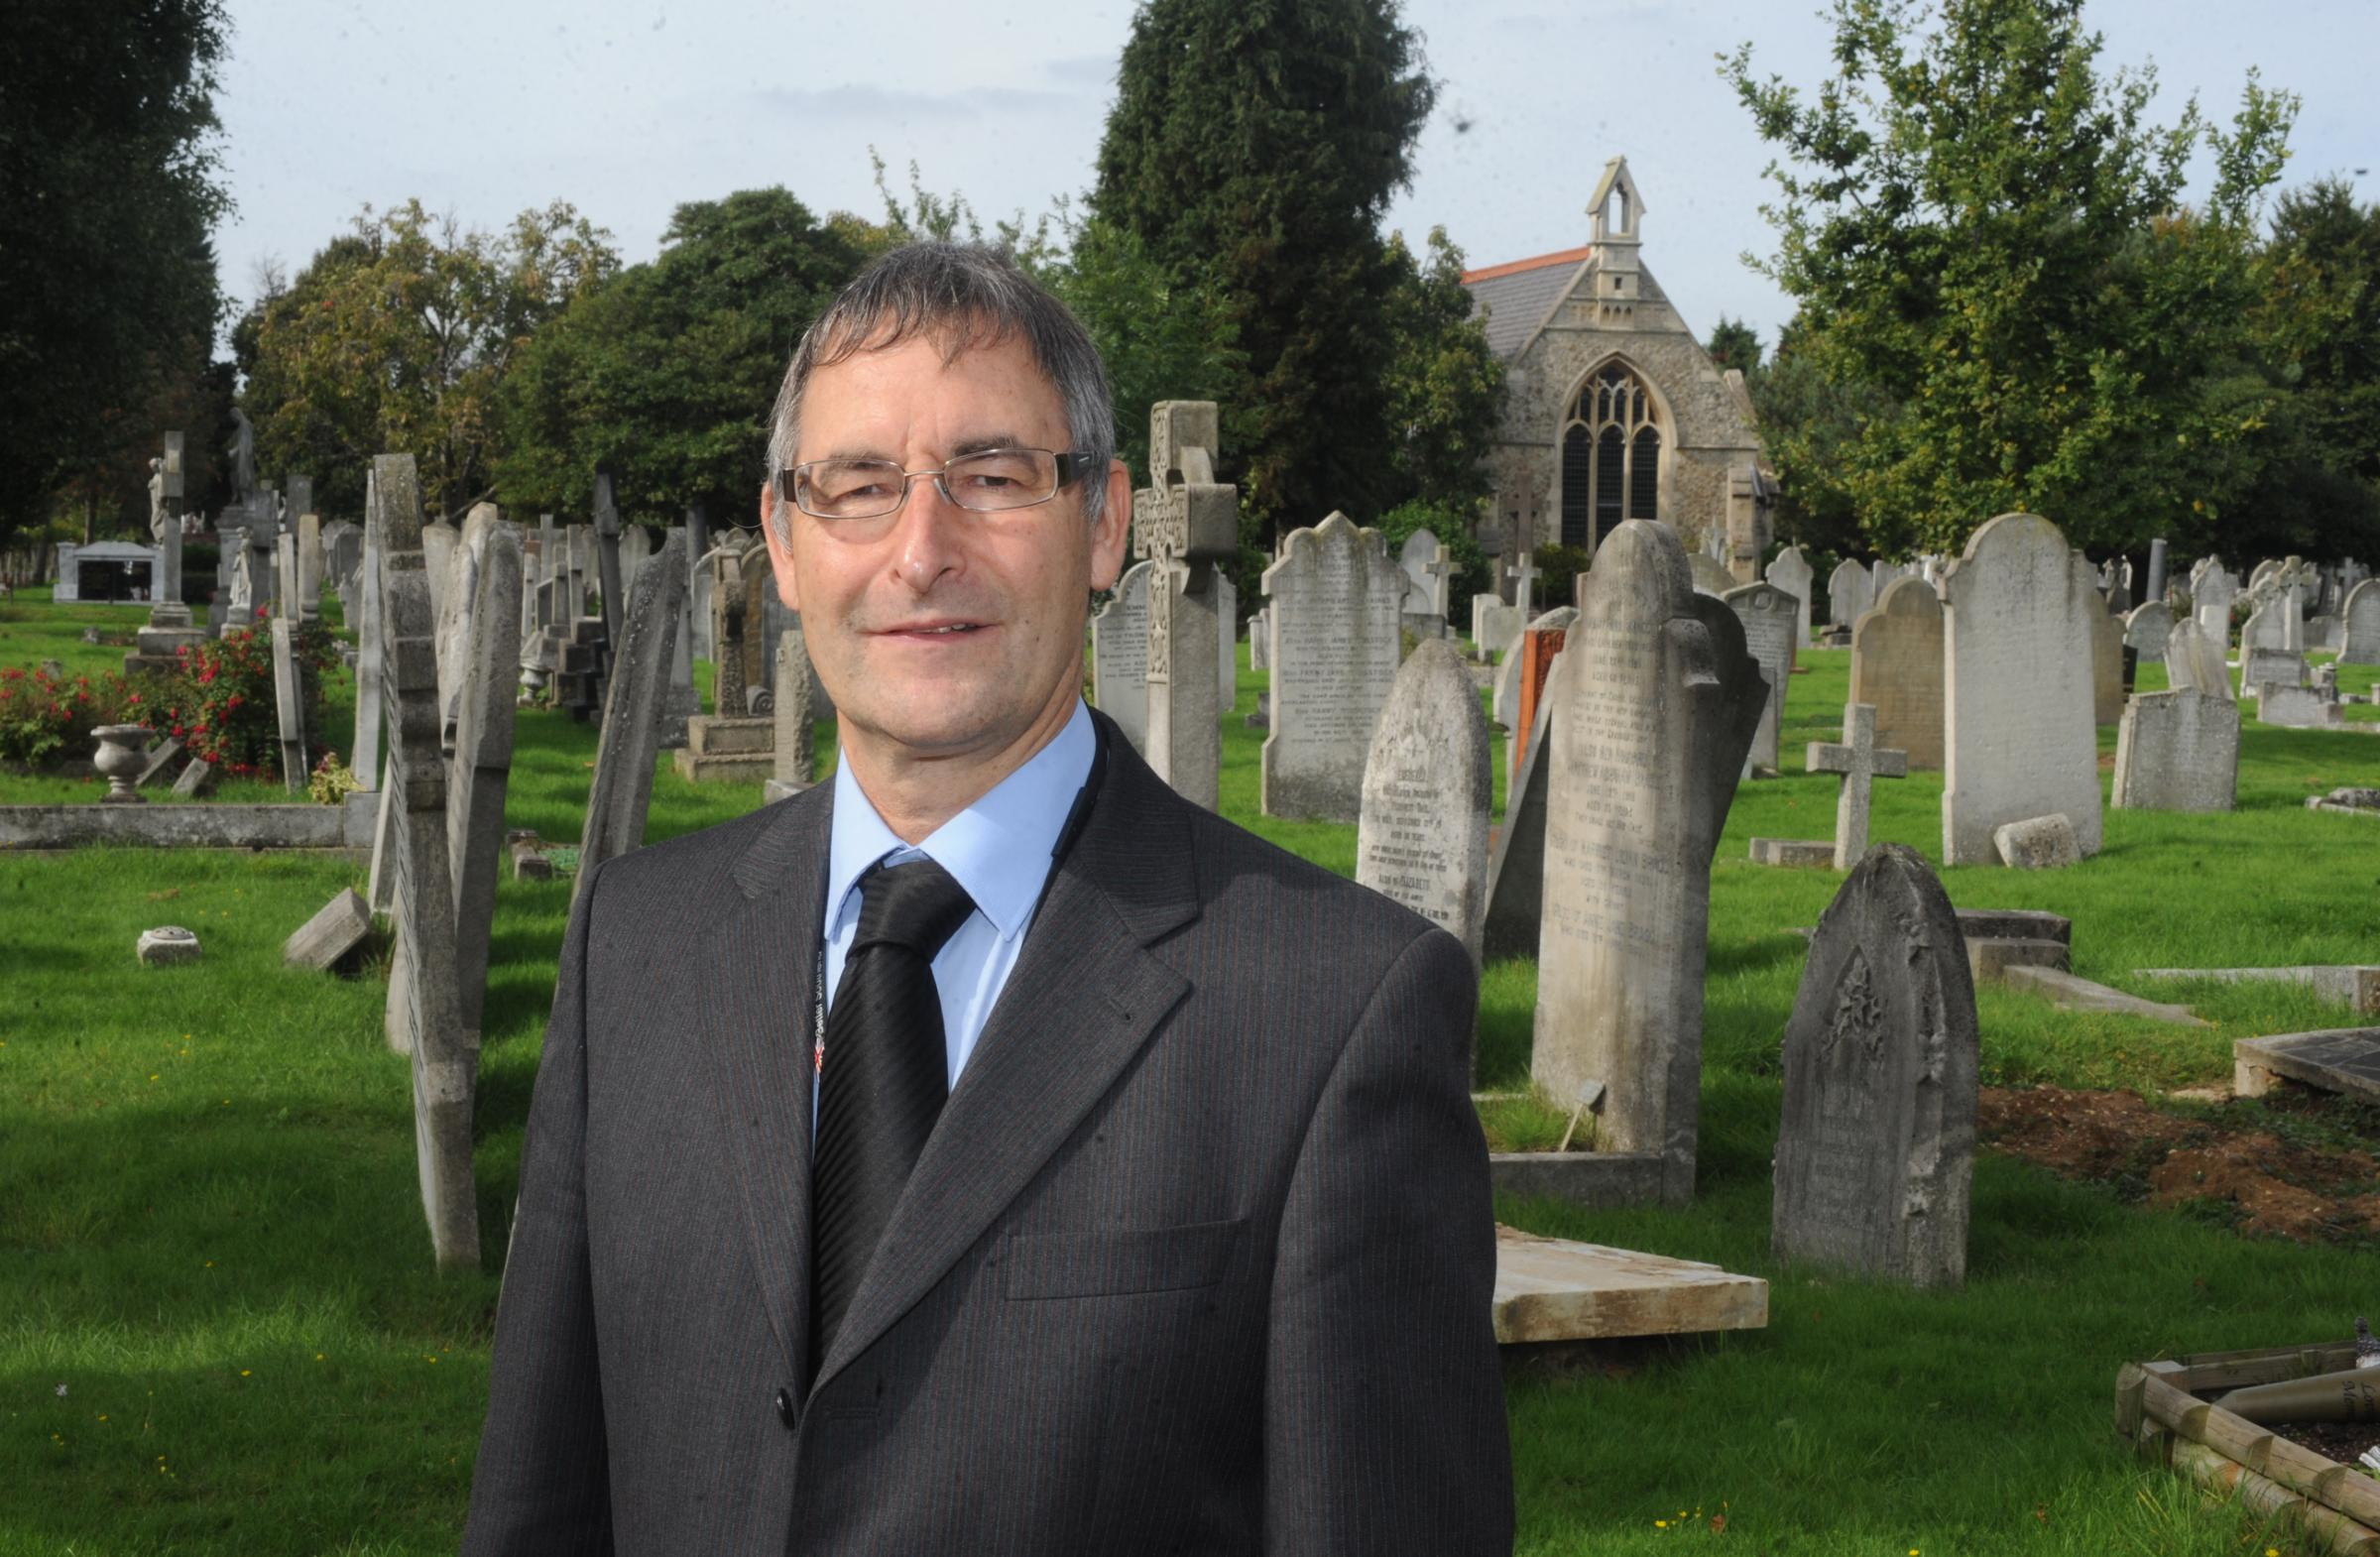 Andrew Moring at the Sutton Road cemetery